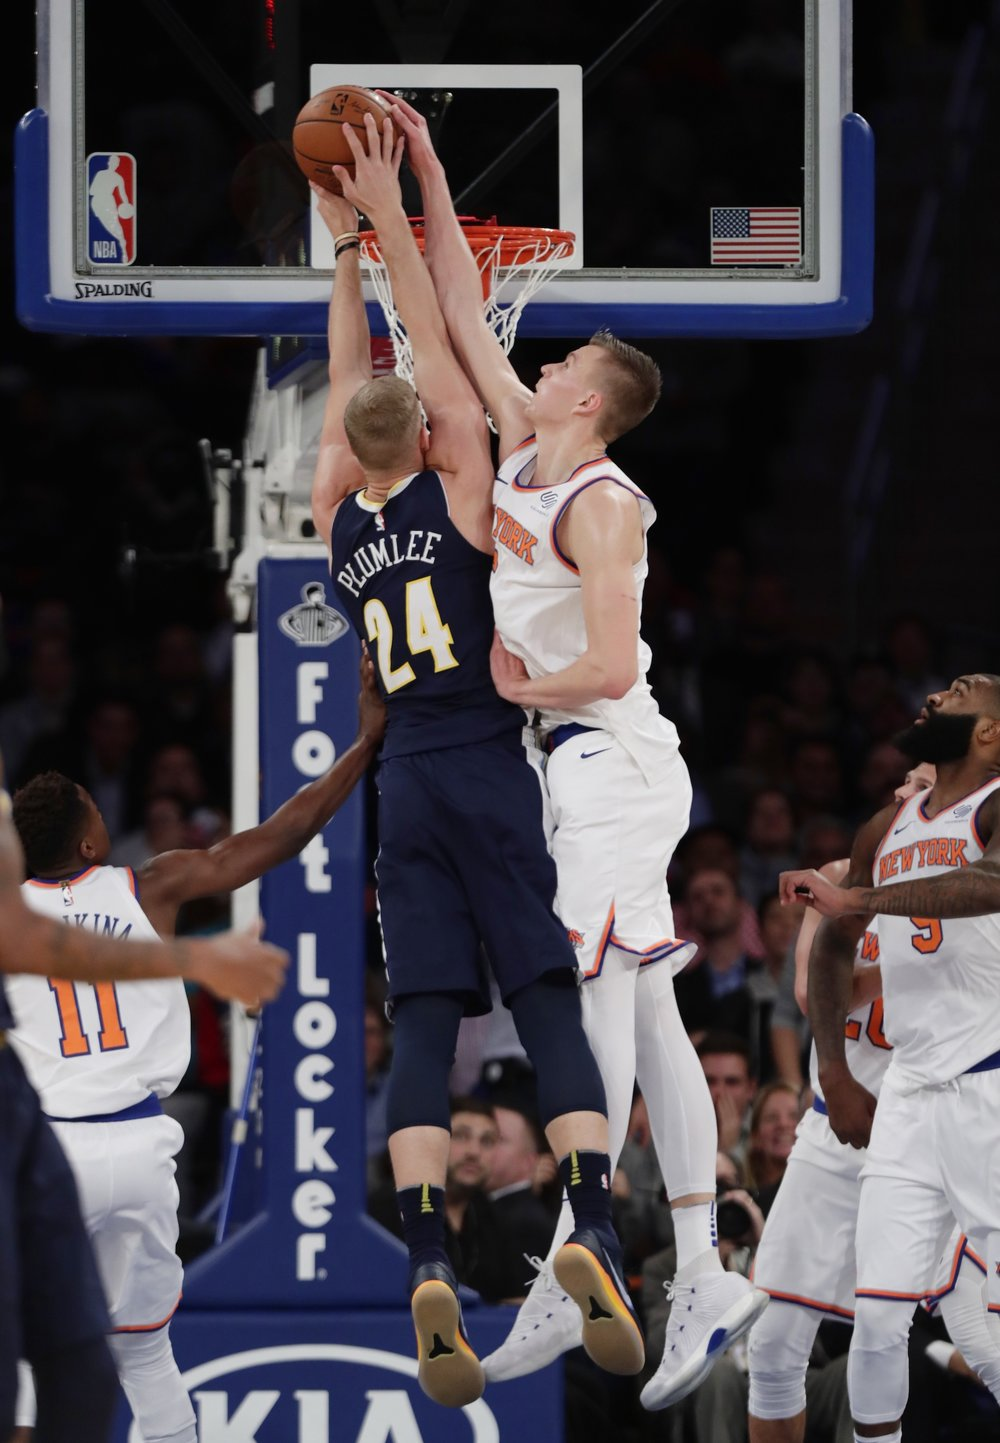 New York Knicks' Kristaps Porzingis, right, blocks a shot by Denver Nuggets' Mason Plumlee during the second half of an NBA basketball game Monday, Oct. 30, 2017, in New York. (AP Photo/Frank Franklin II)